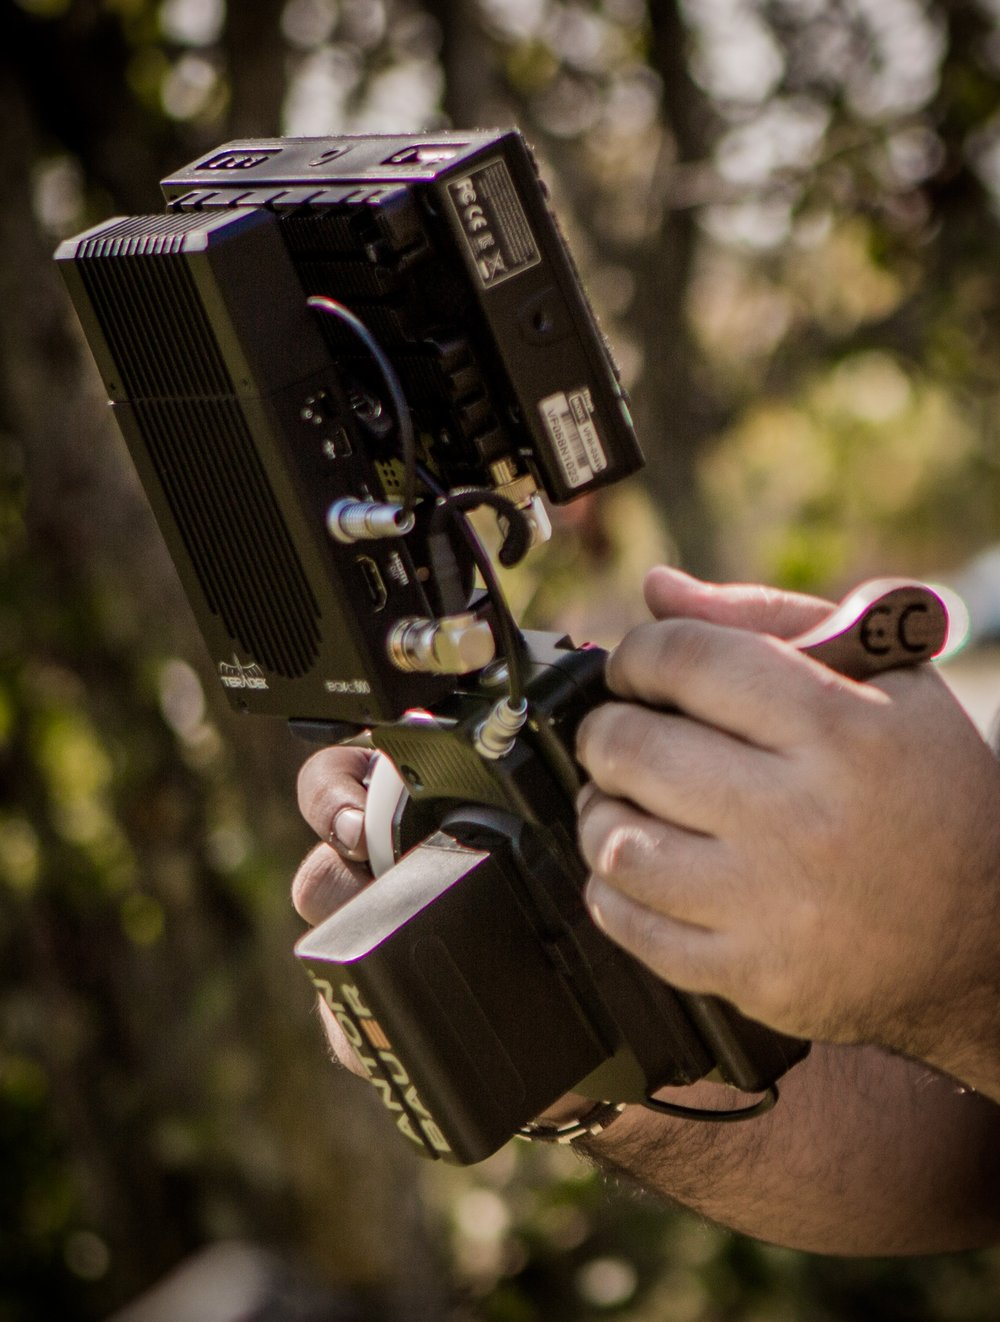 Not just a monitor bracket ... a fully portable solution with power distribution and for your monitor, receiver and the Teradek RT controller.  The side rosette grip is positioned on the same axis as the focus knob, making for a balanced and comfortable carry.